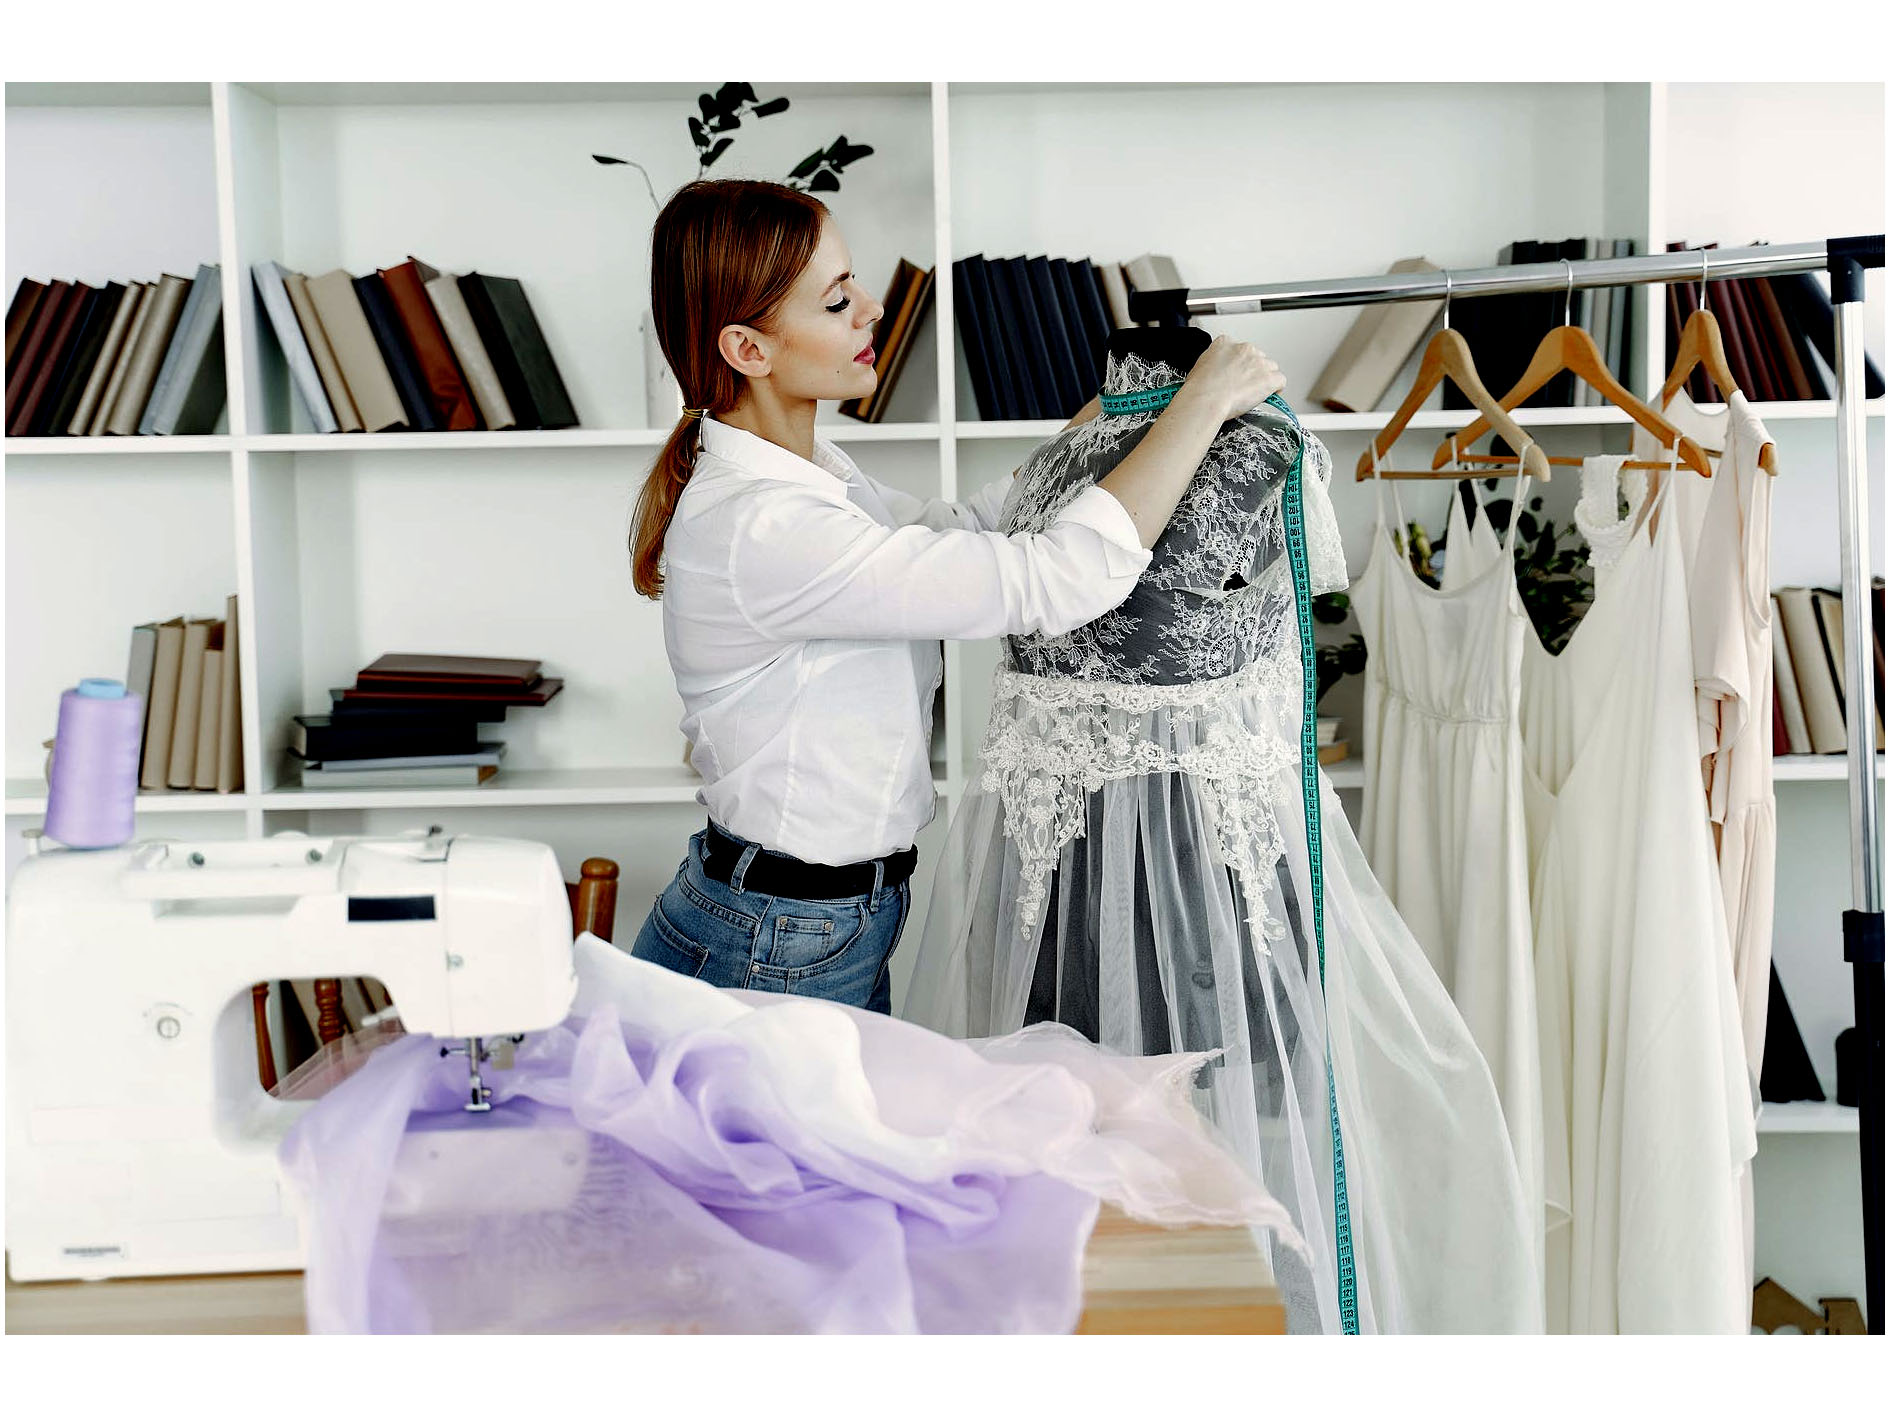 Organizing the gown